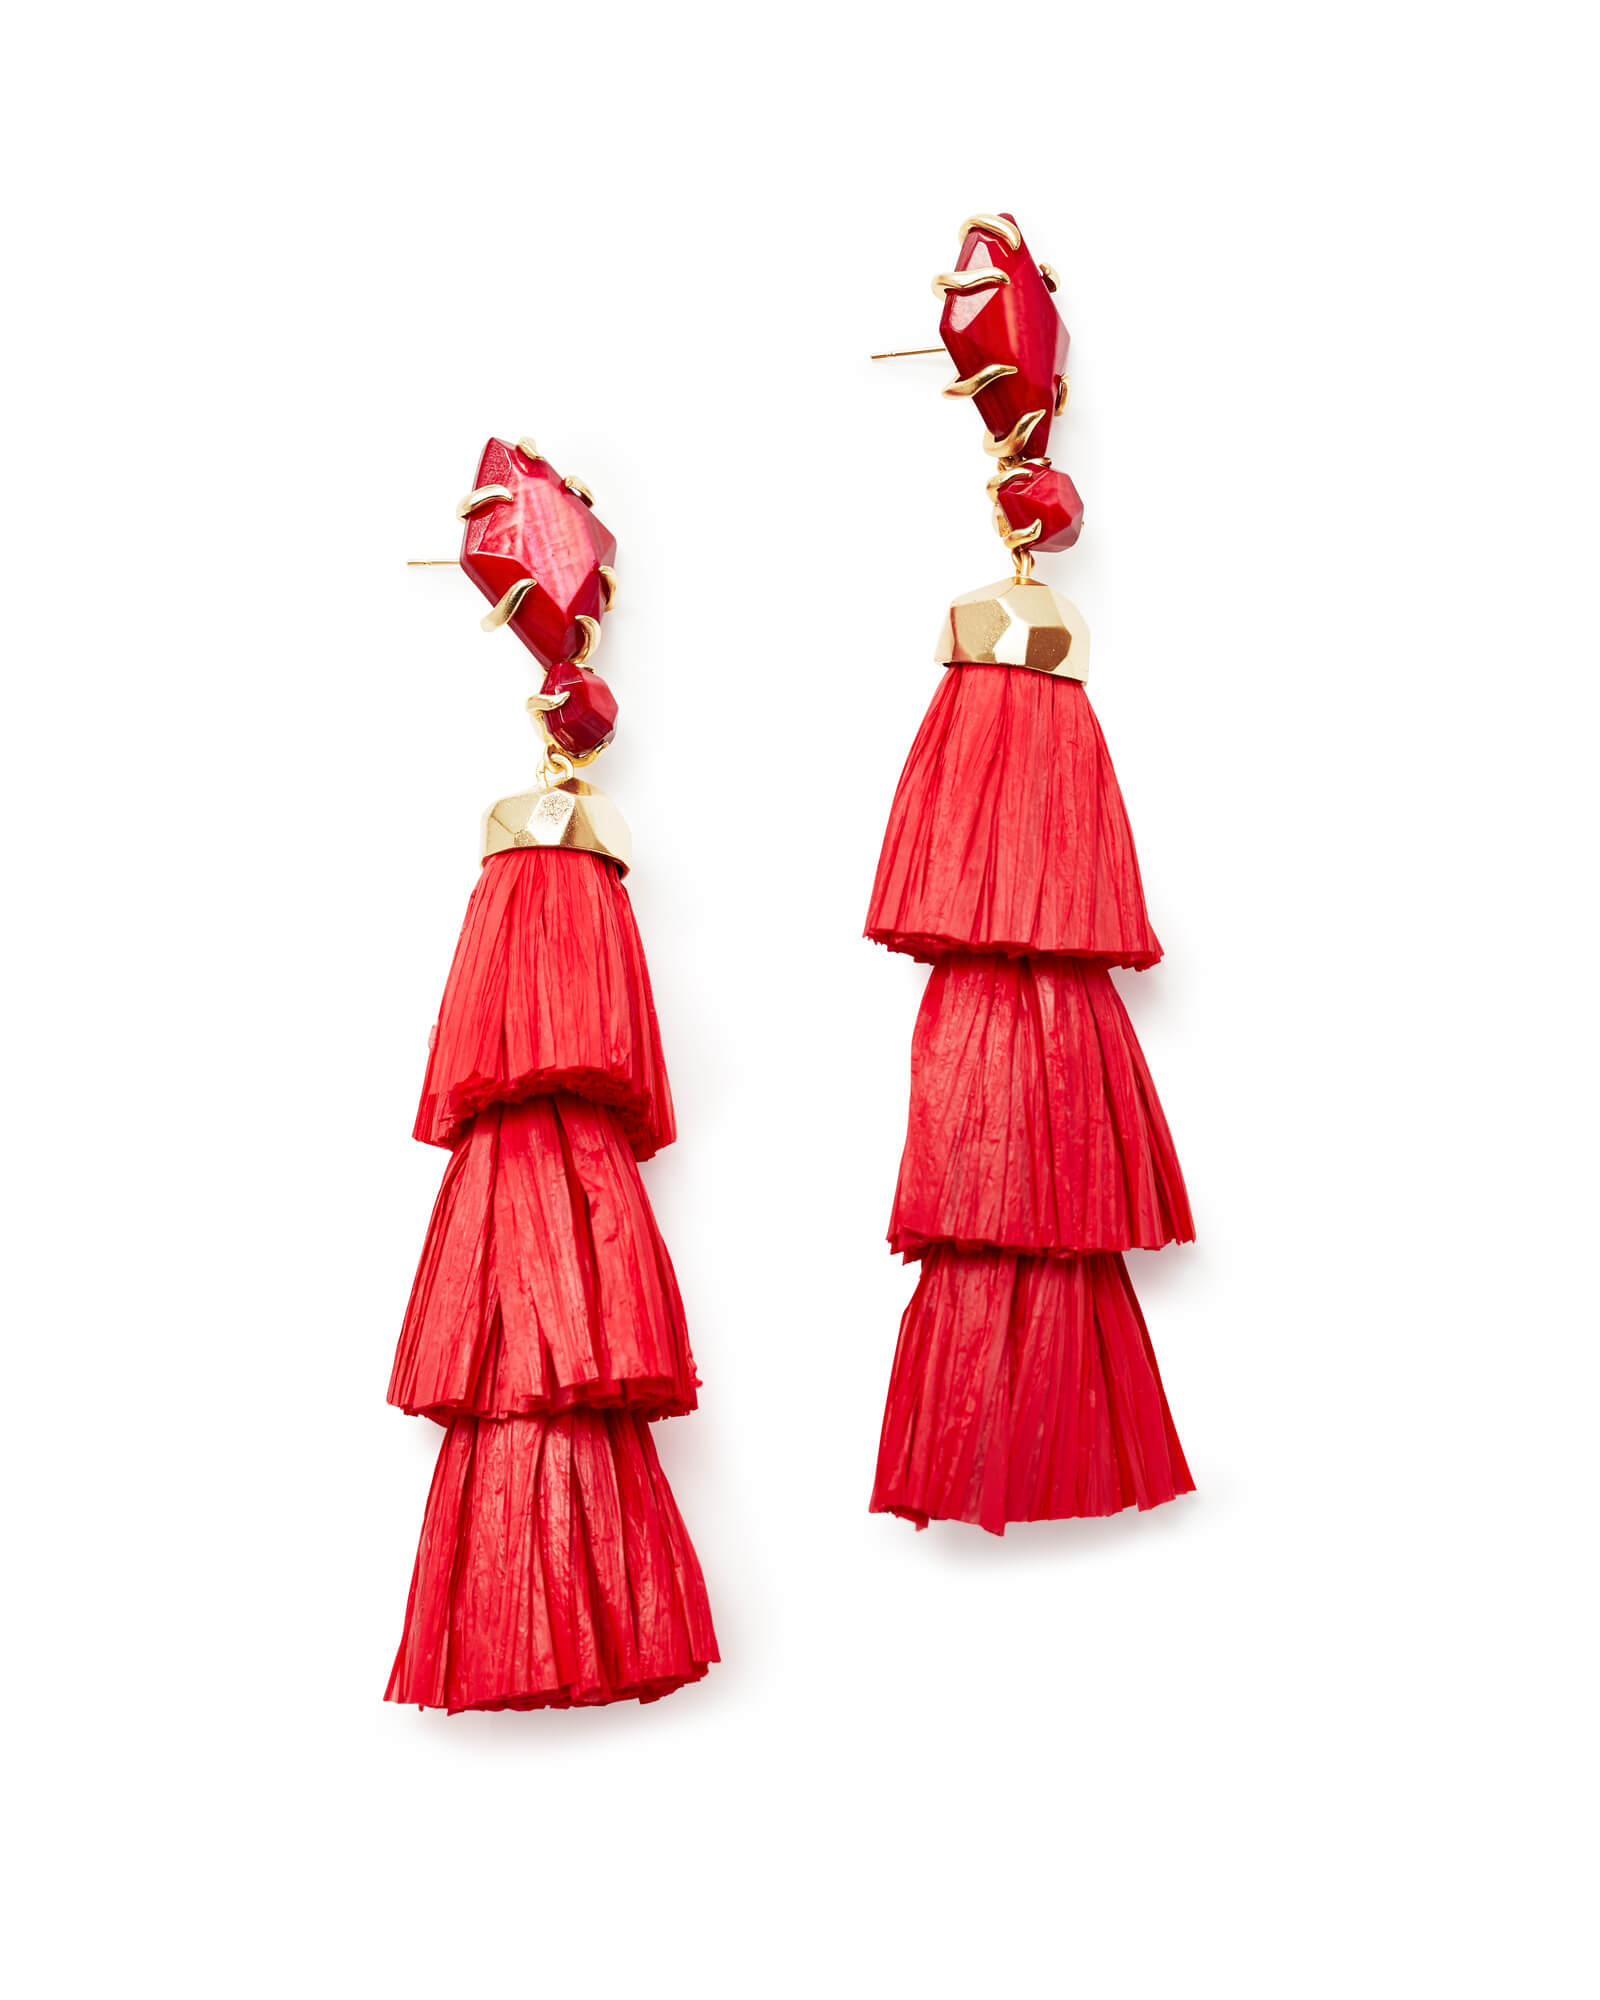 Denise Gold Statement Earrings In Red Mother of Pearl